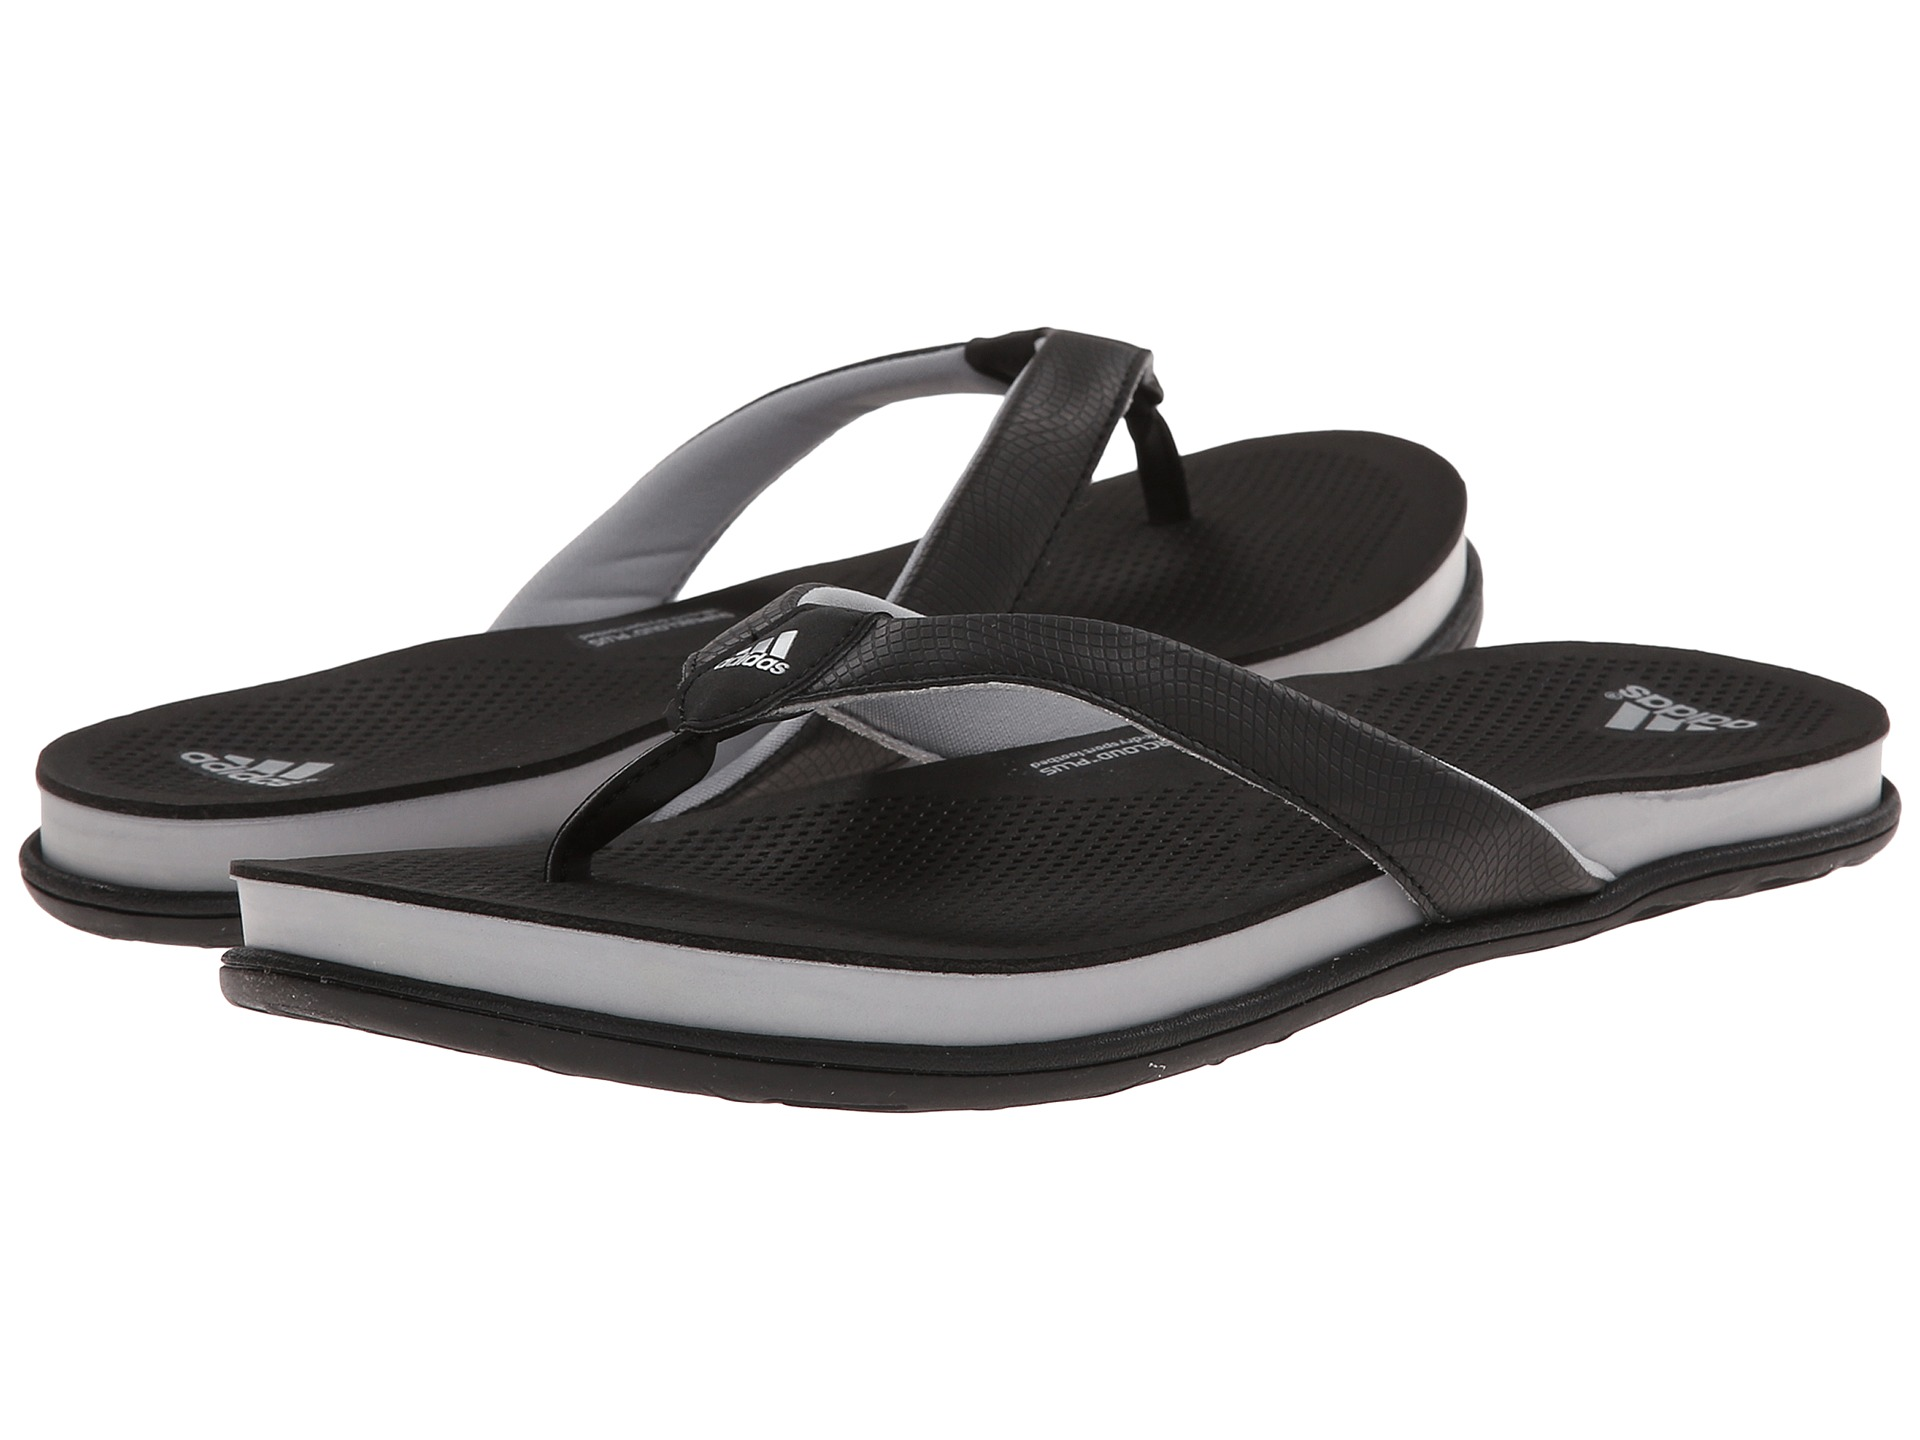 a92d0d901d28 Buy adidas thong slippers   OFF63% Discounted